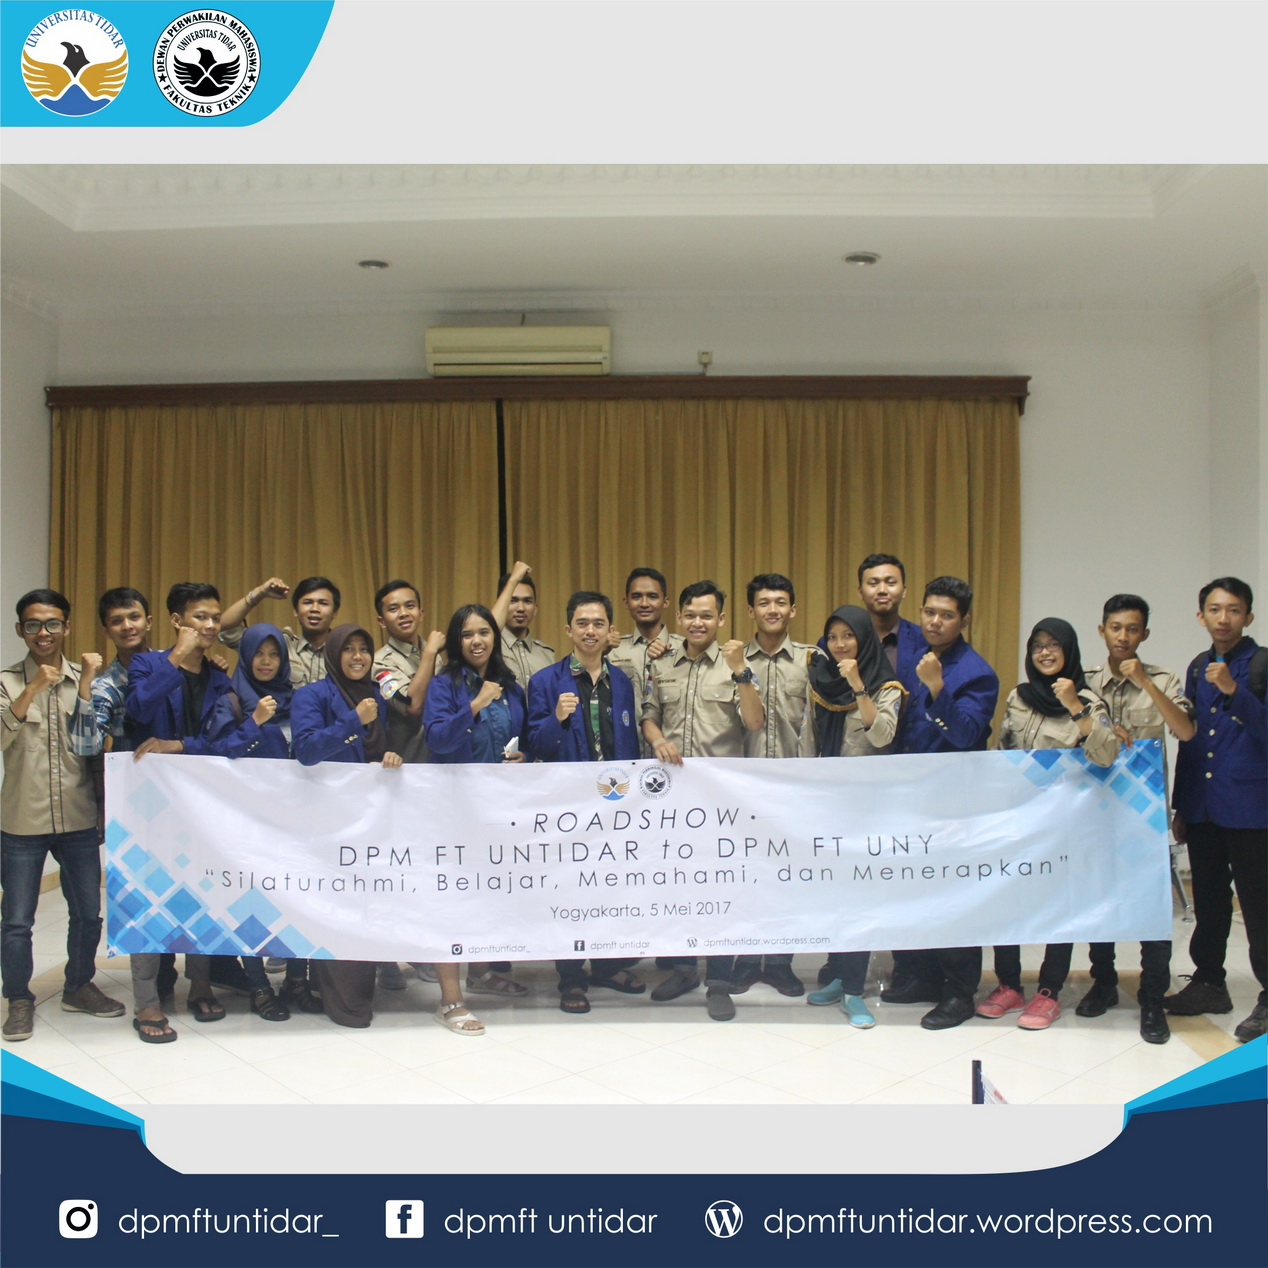 Road show DPM FT UNTIDAR TO Universitas Negeri Yogyakarta